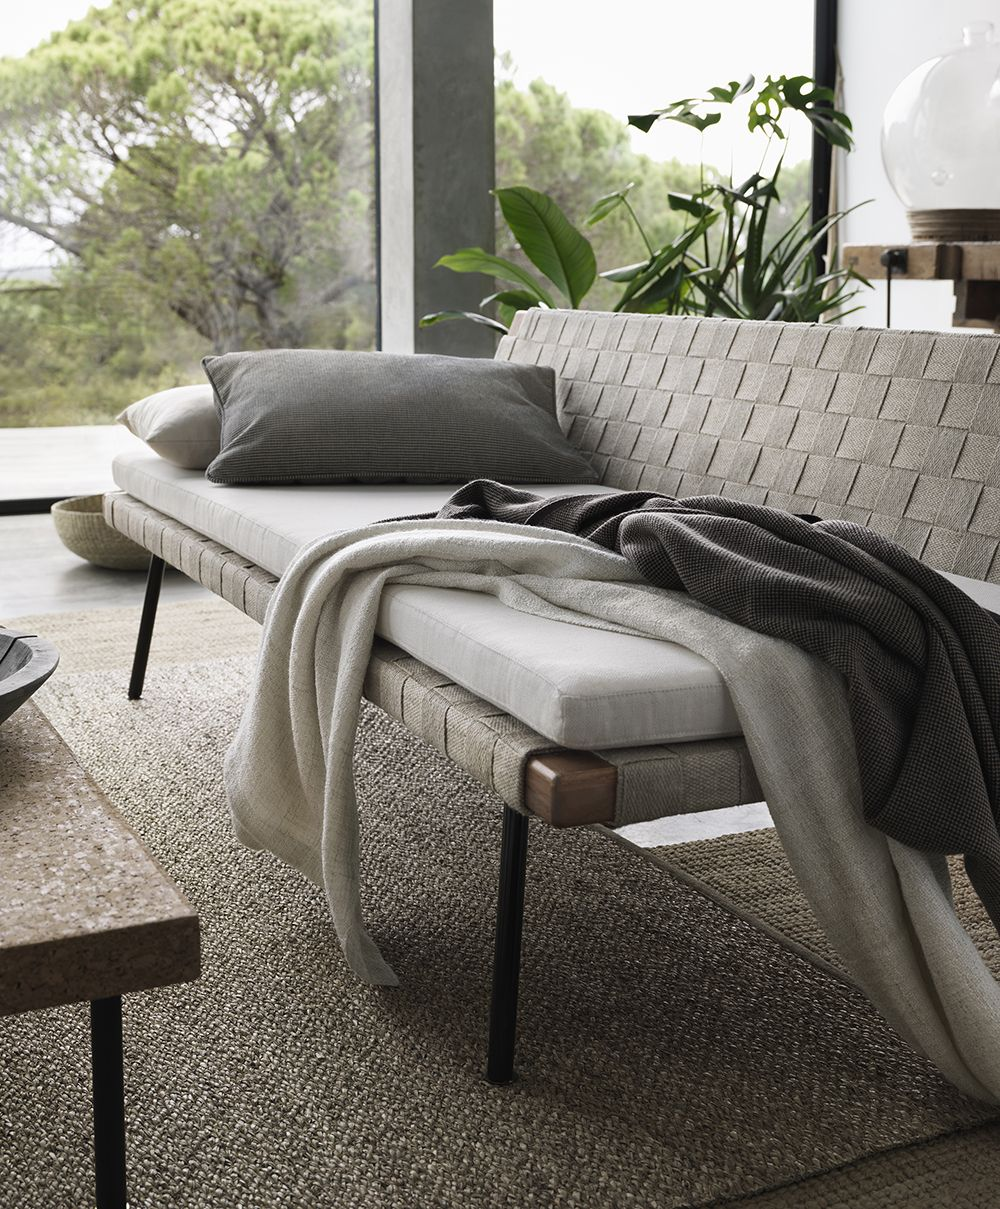 Ikea Sinnerlig Daybed Sofa By Ilse Crawford